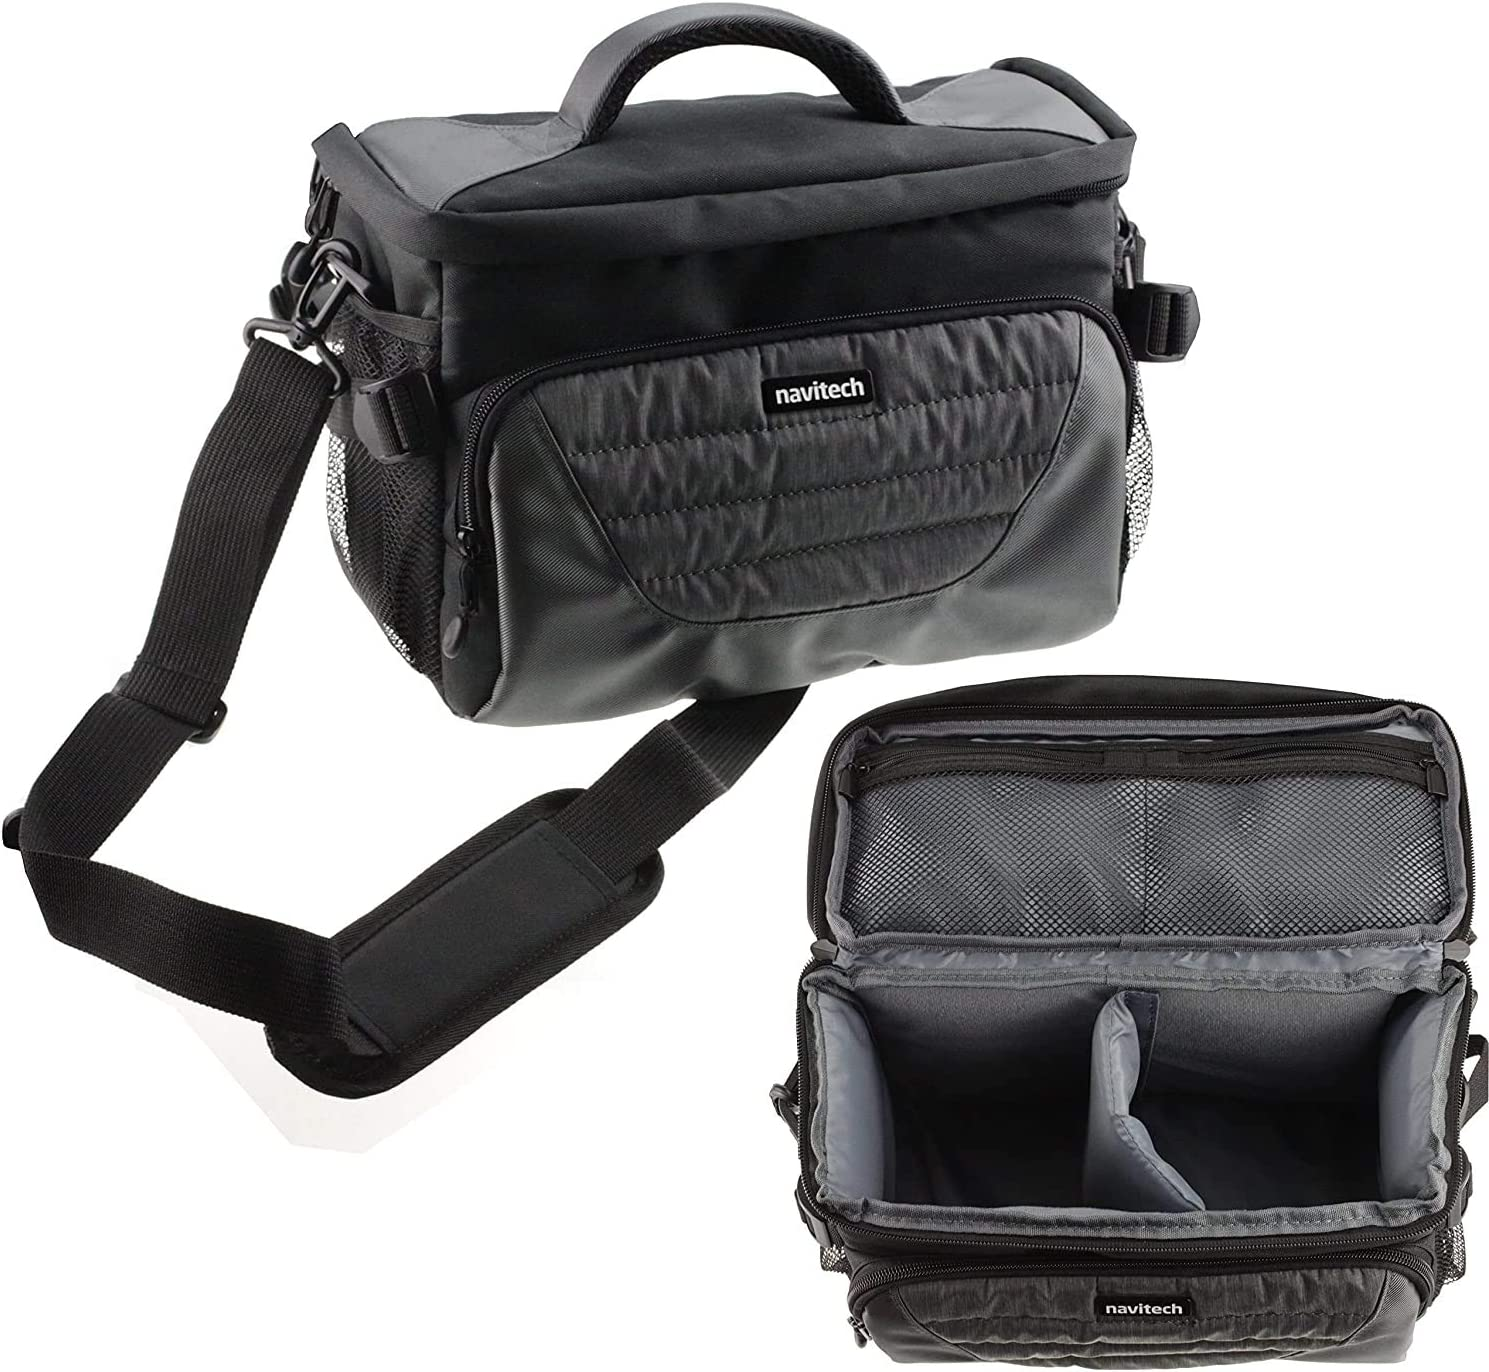 Navitech Grey Shoulder Camera Bag 77D EOS Compatible Max 83% OFF Canon with Soldering